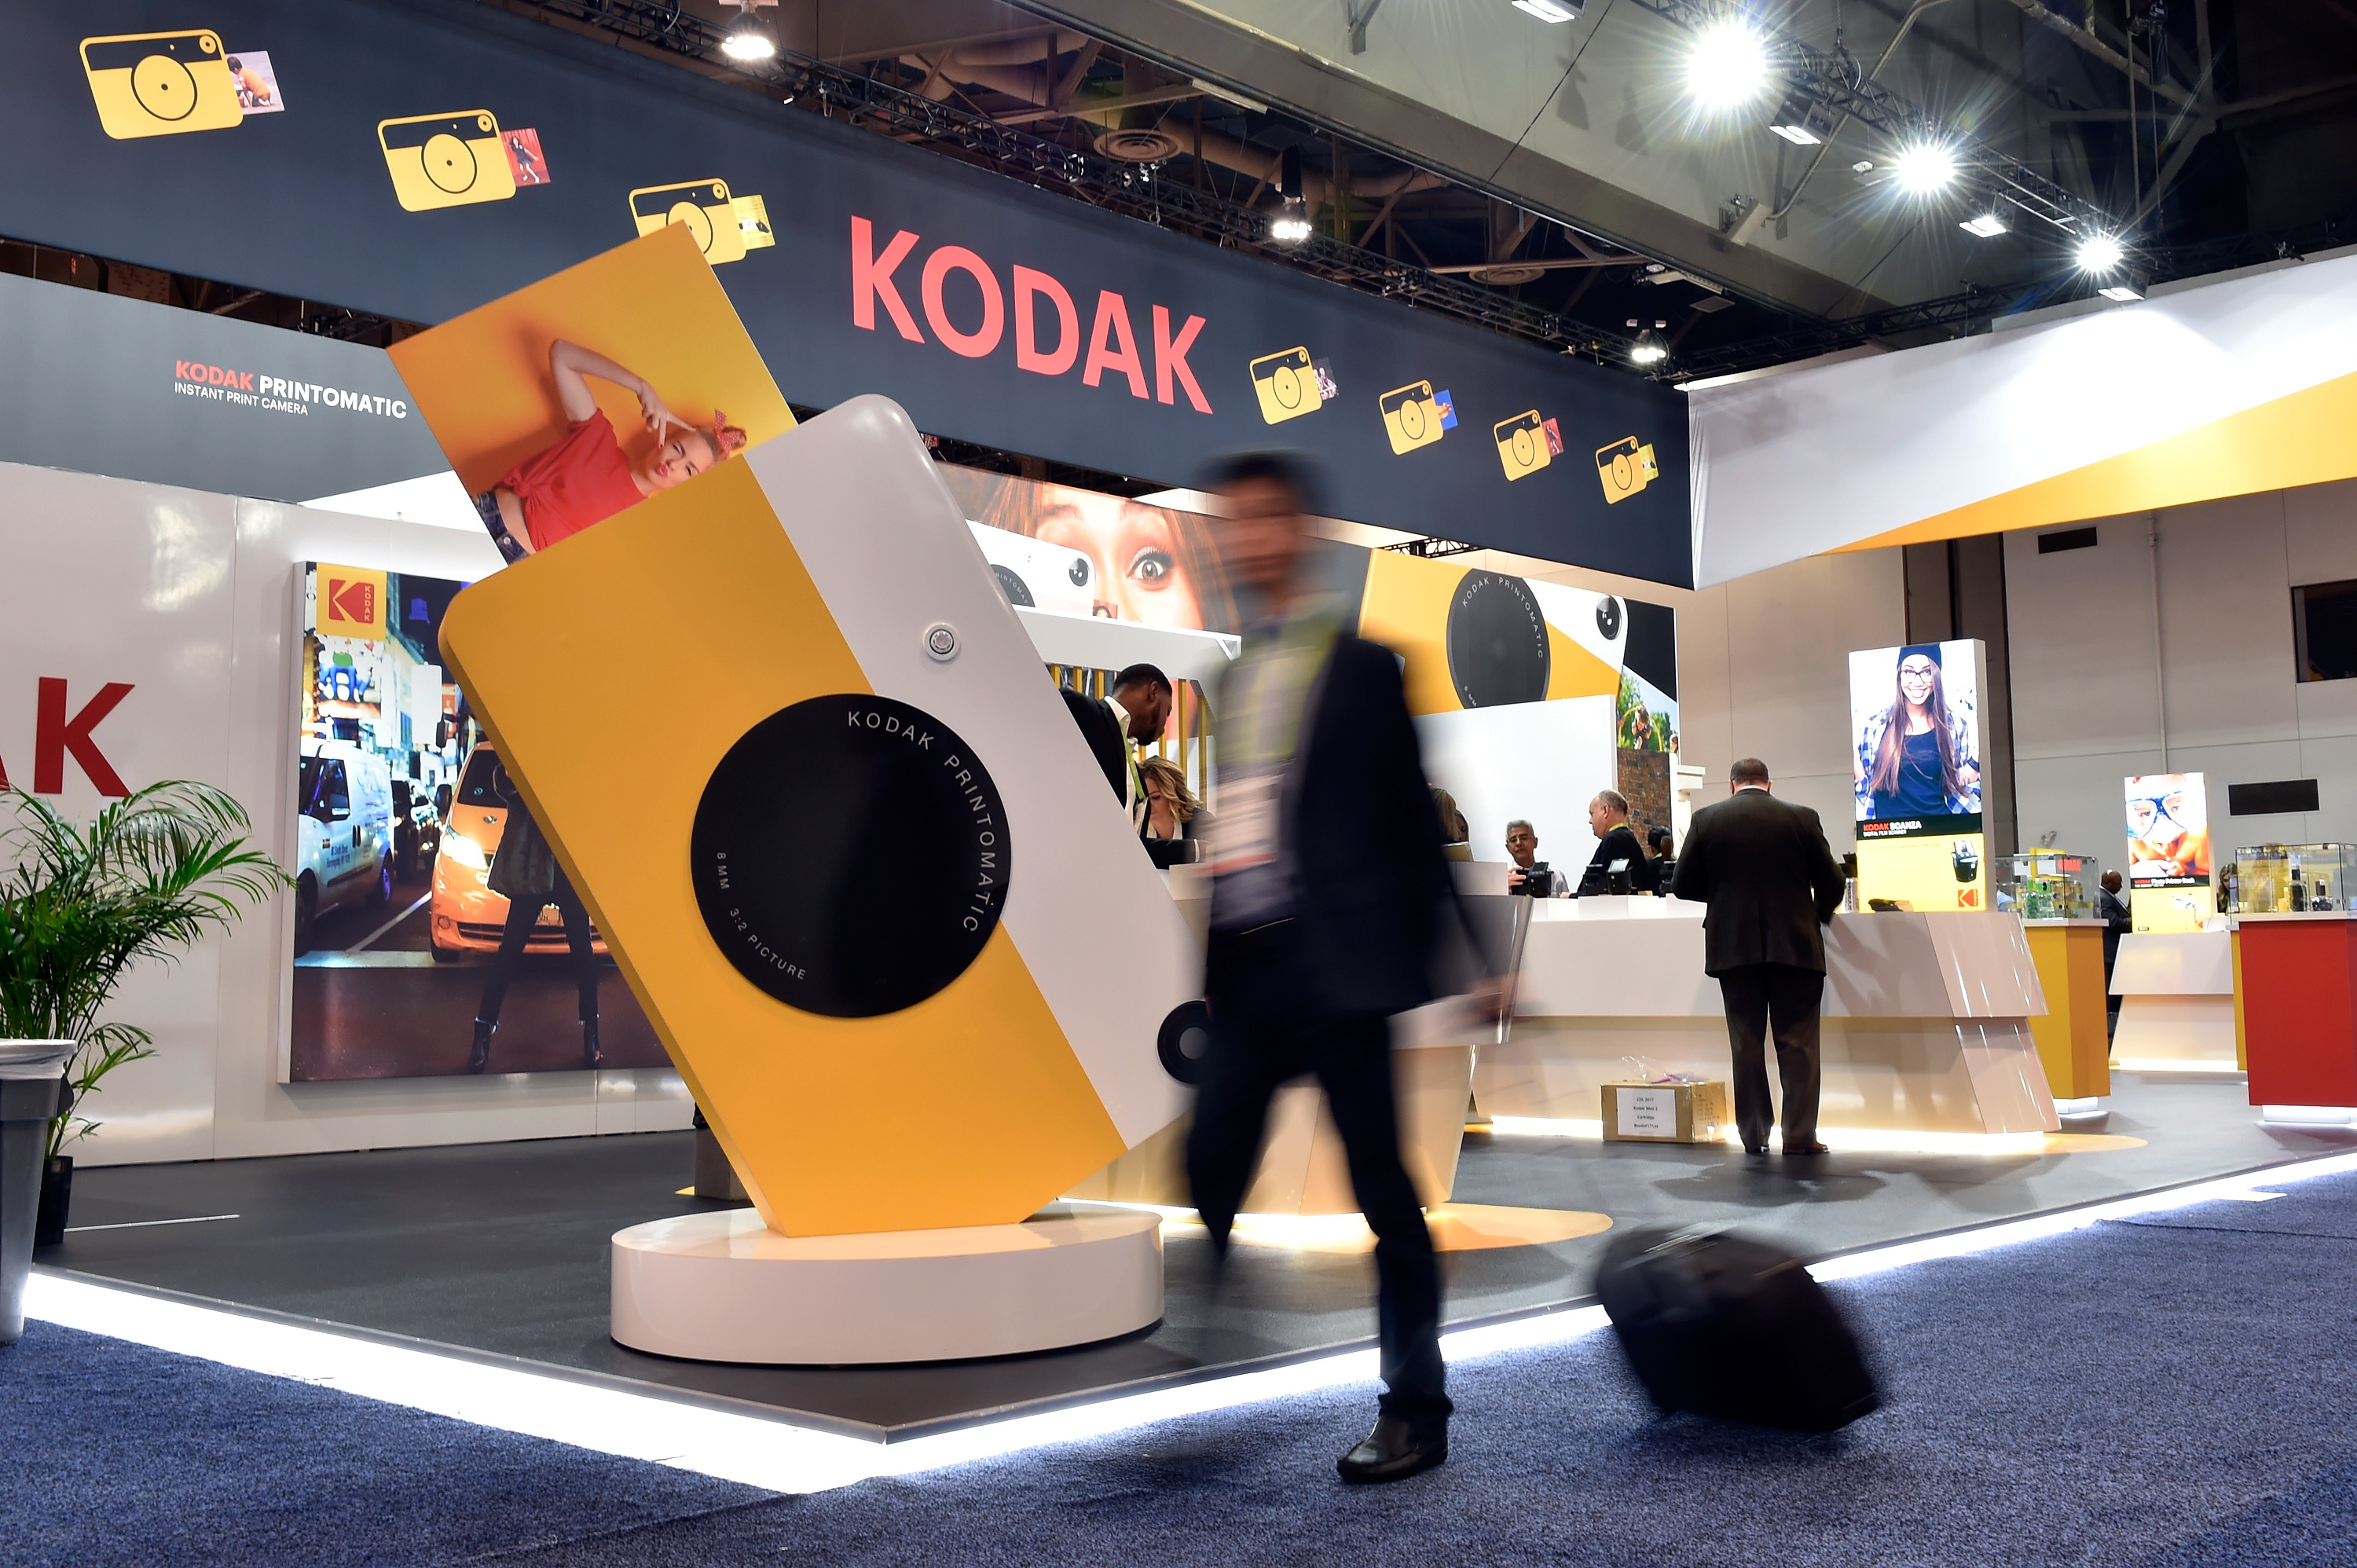 An attendee walks by the Kodak booth during CES 2018 at the Las Vegas Convention Center. CES is the world's largest annual consumer technology trade show. (Photo by David Becker/Getty Images)